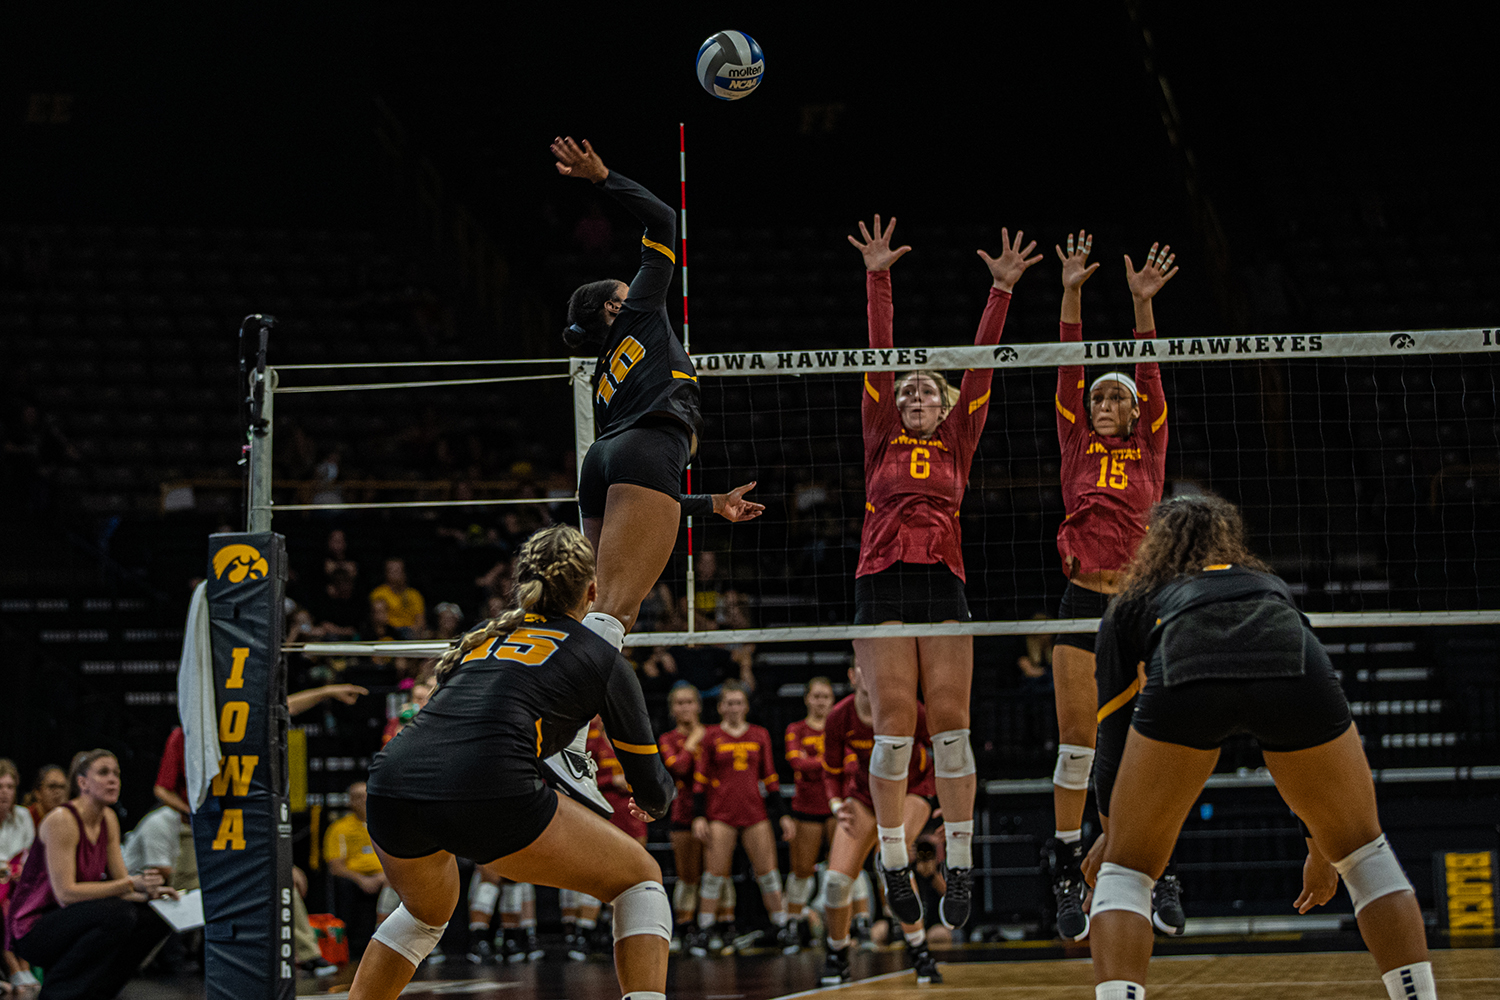 Iowa outside hitter Griere Hughes goes for a kill during a volleyball match between Iowa and Iowa State at Carver-Hawkeye Arena on Saturday, September 21, 2019. The Hawkeyes fell to the visiting Cyclones, 3-2.